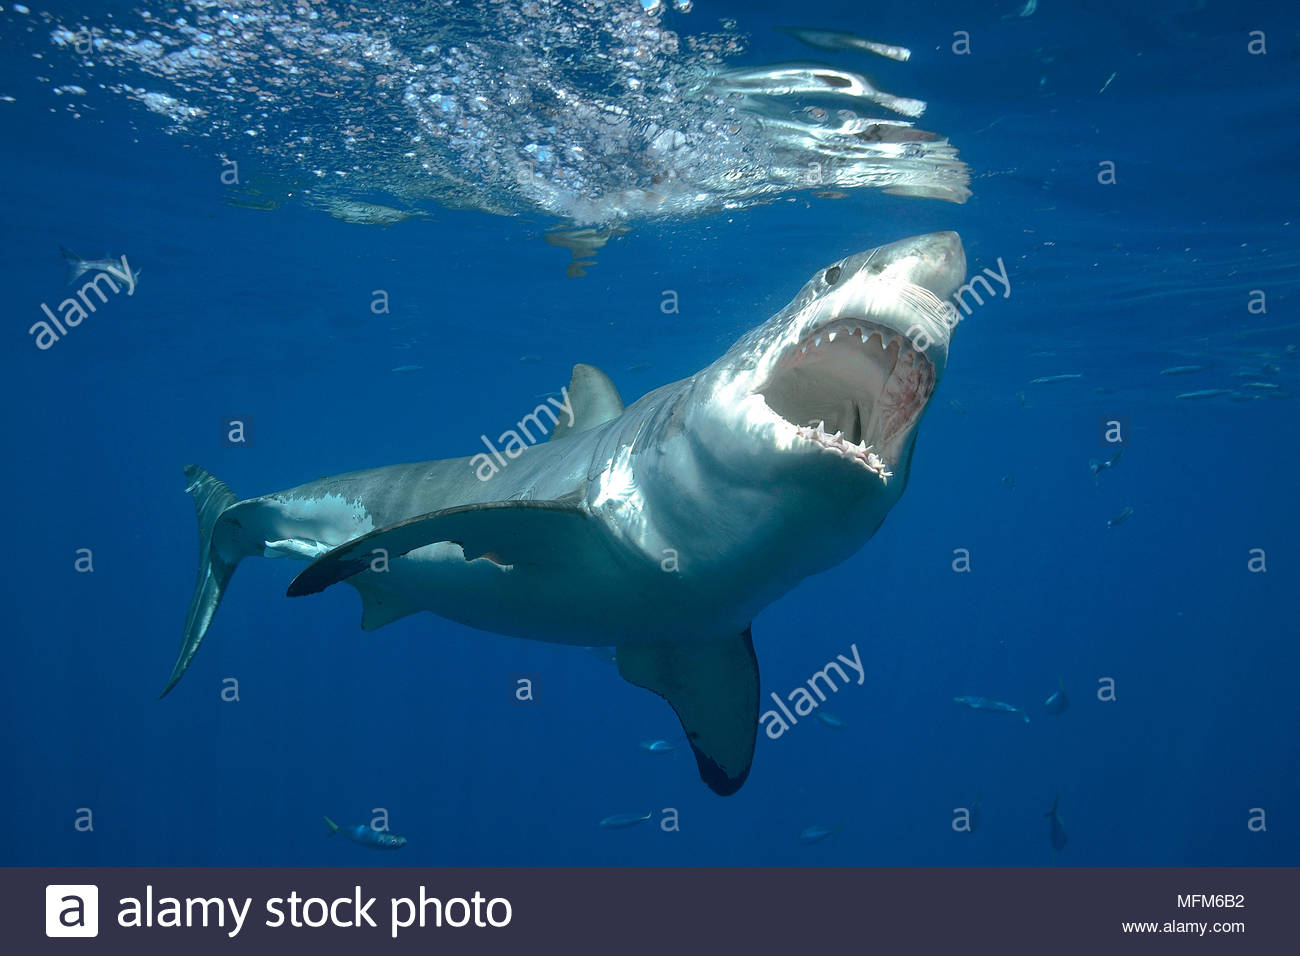 Great white shark (Carcharodon carcharias), open mouth, Guadelupe, Mexico - Stock Image